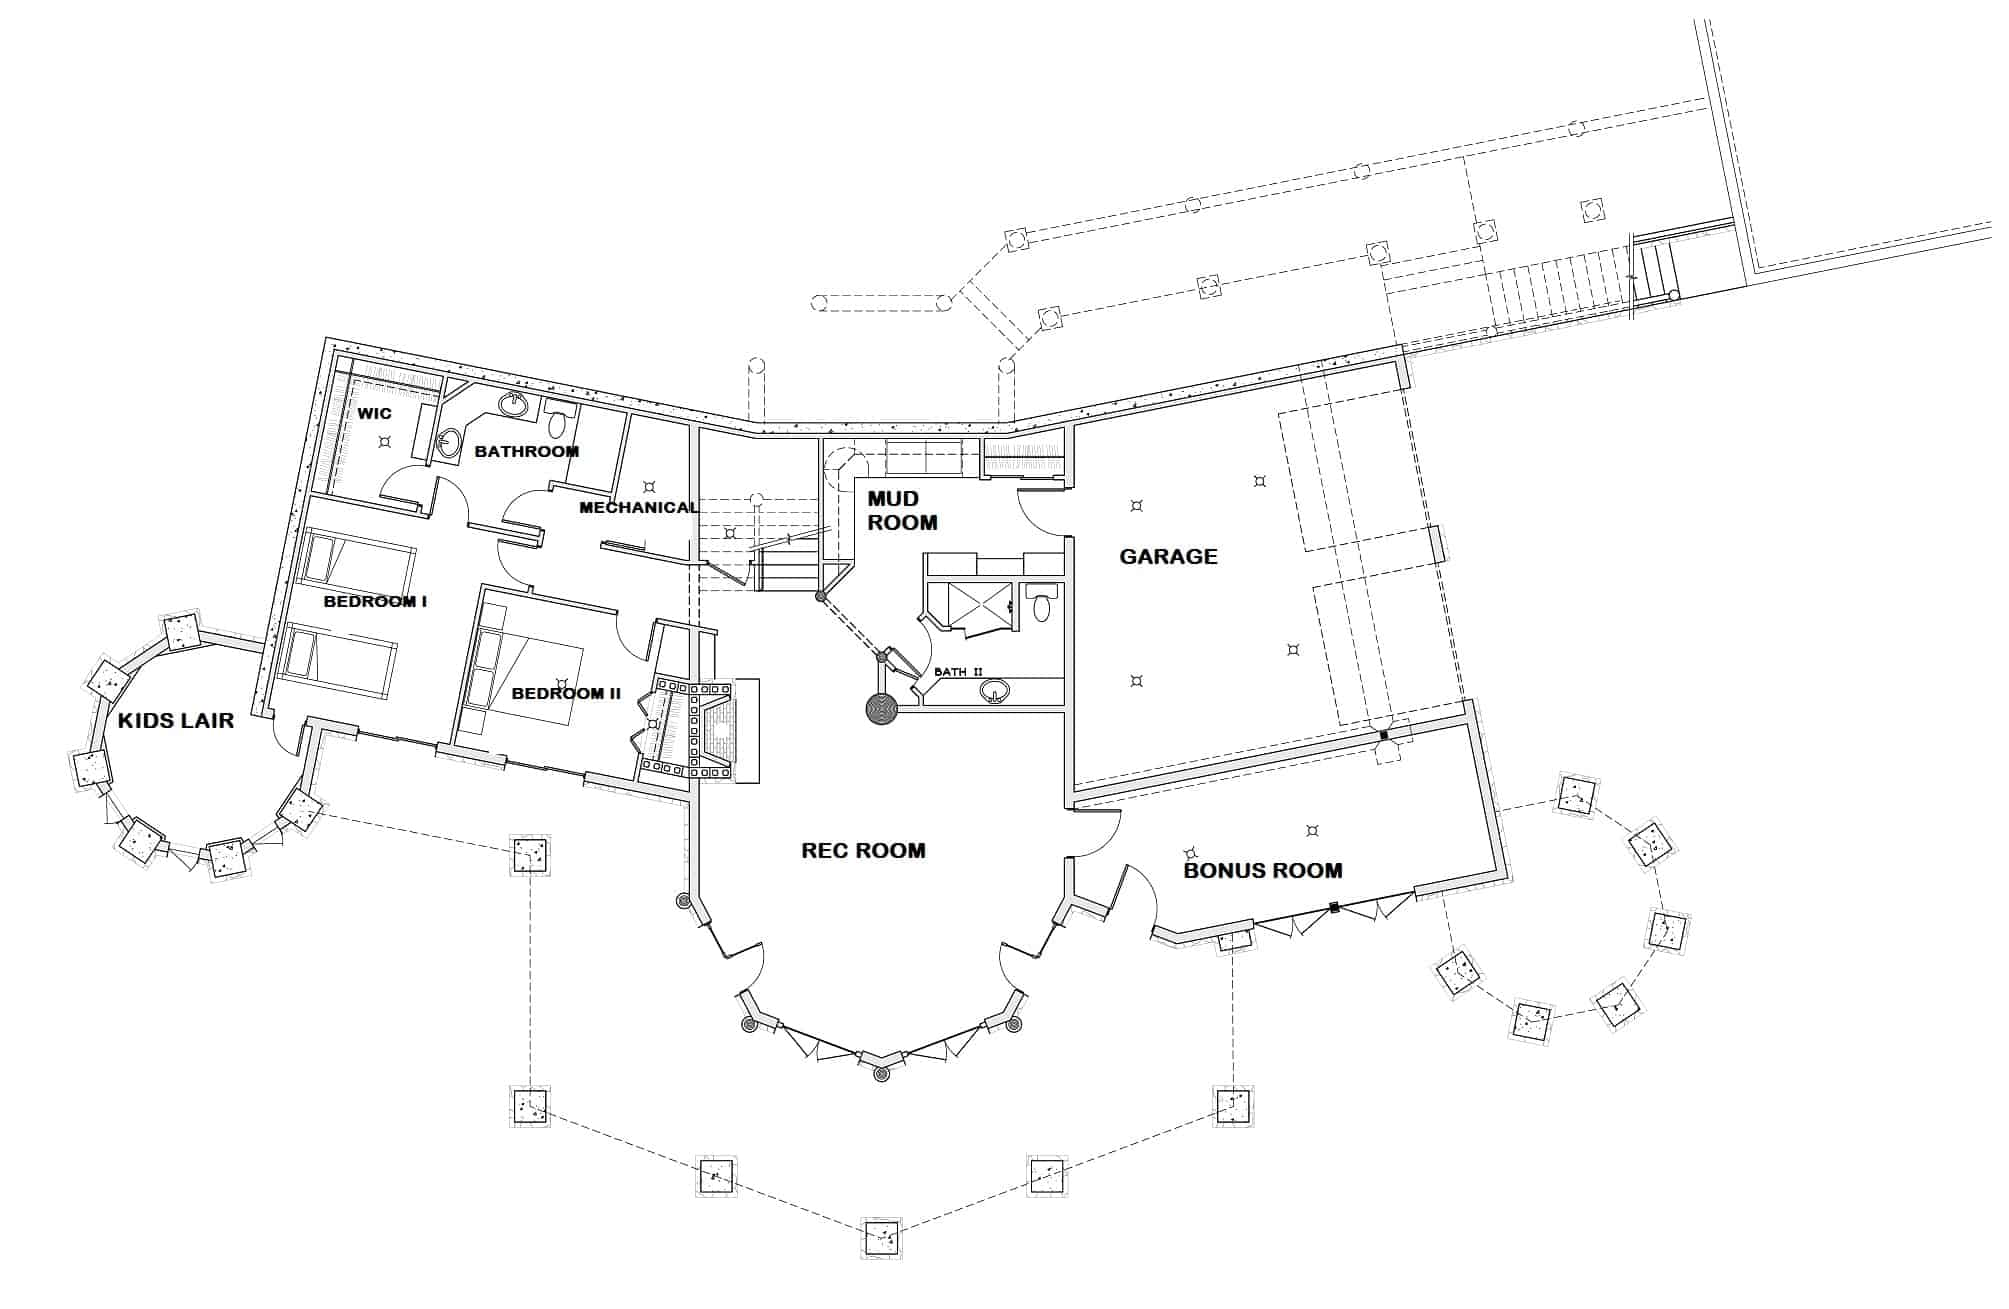 Lower level floor plan with a 2-car garage, a record room, two bedrooms where one has a kids' lair, and a bonus room.